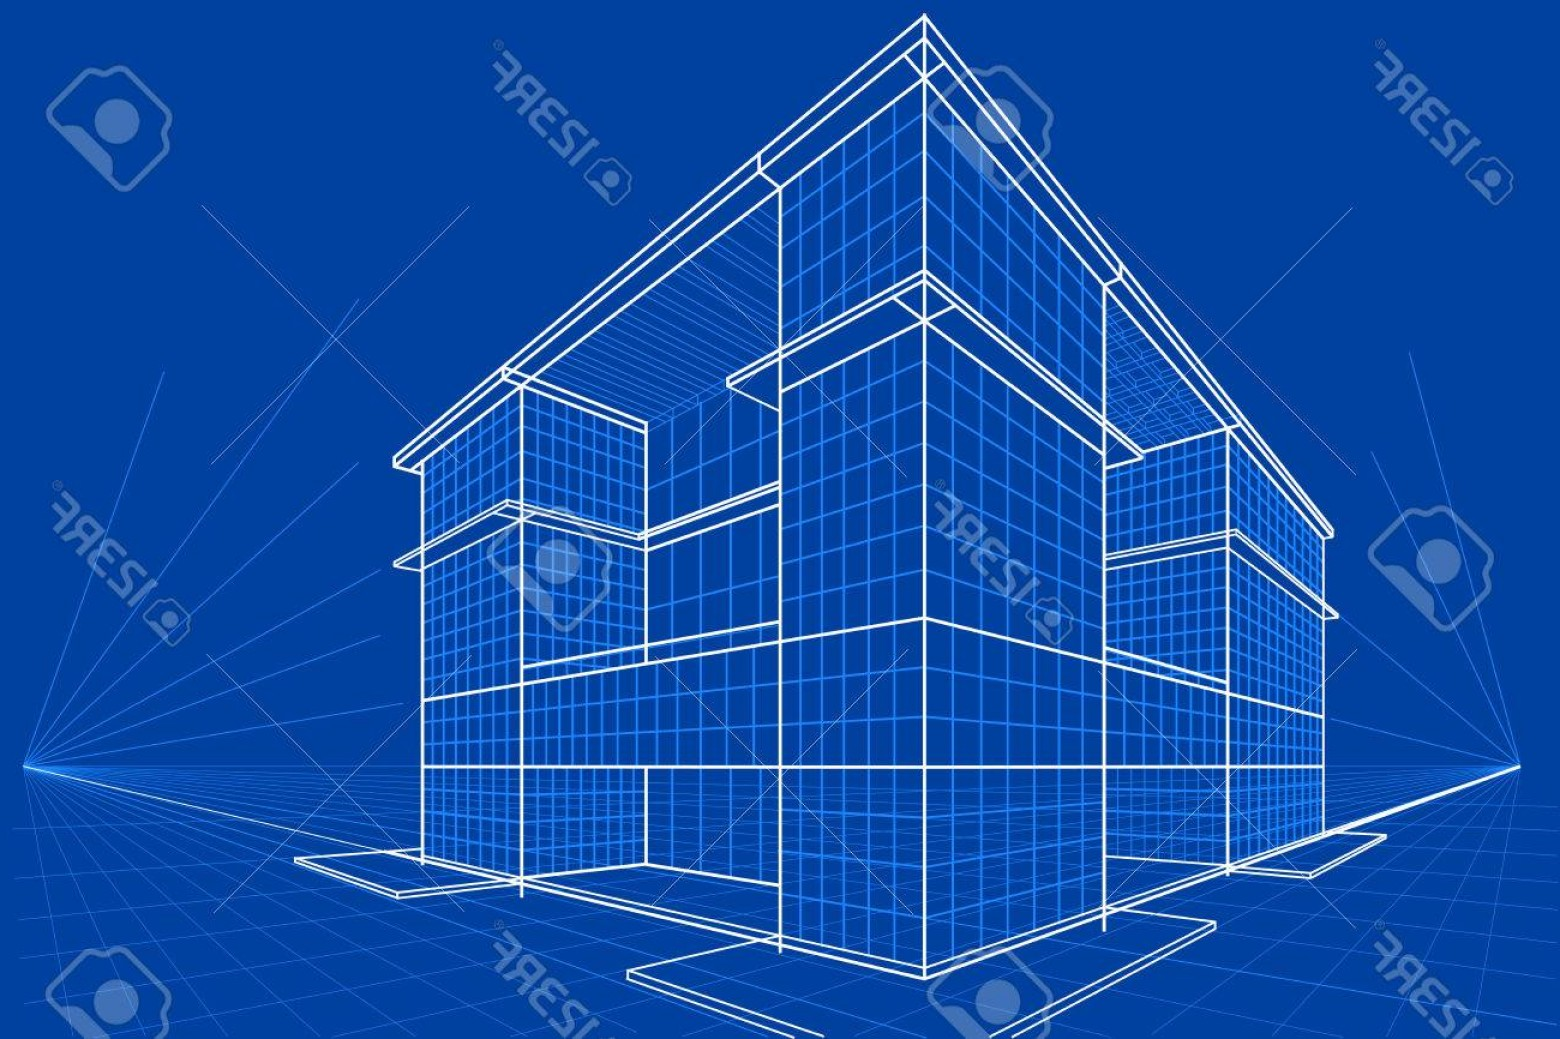 Photostock vector easy to edit vector illustration of blueprint of blue print vectors photostock vector easy to edit vector illustration of blueprint of building malvernweather Choice Image